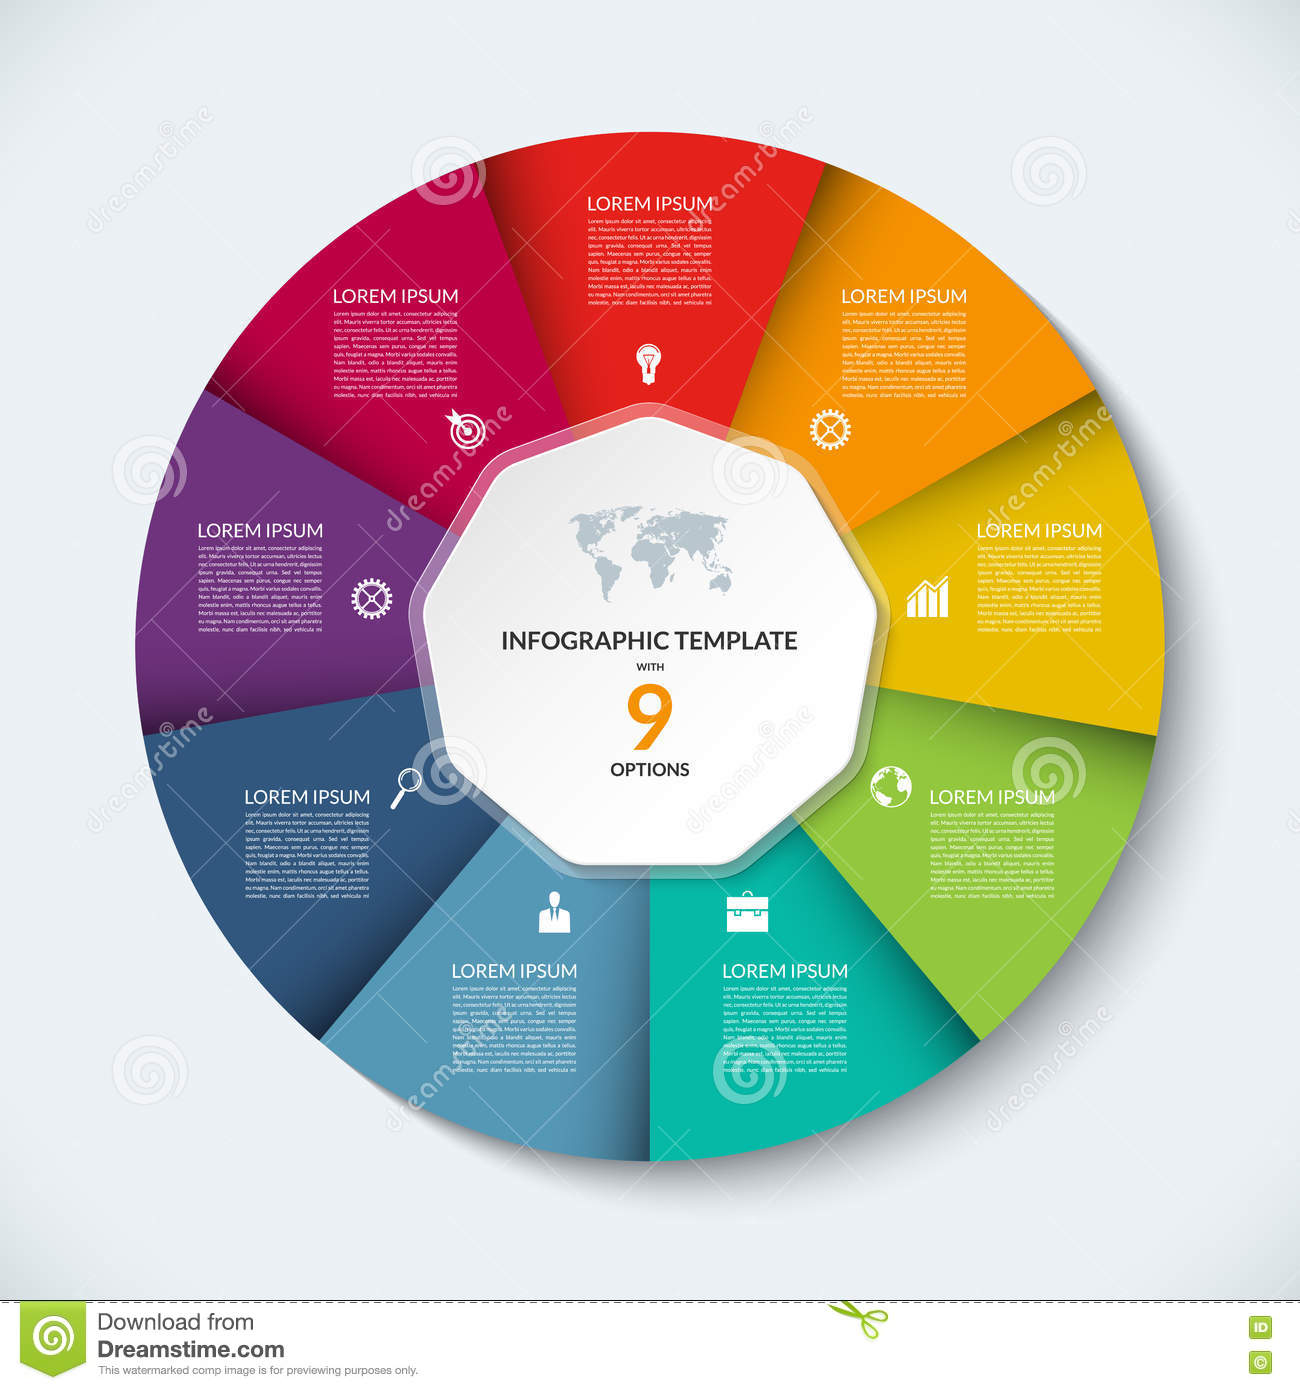 Vector infographic circle template business concept with 9 options vector infographic circle template business concept with 9 options cheaphphosting Choice Image